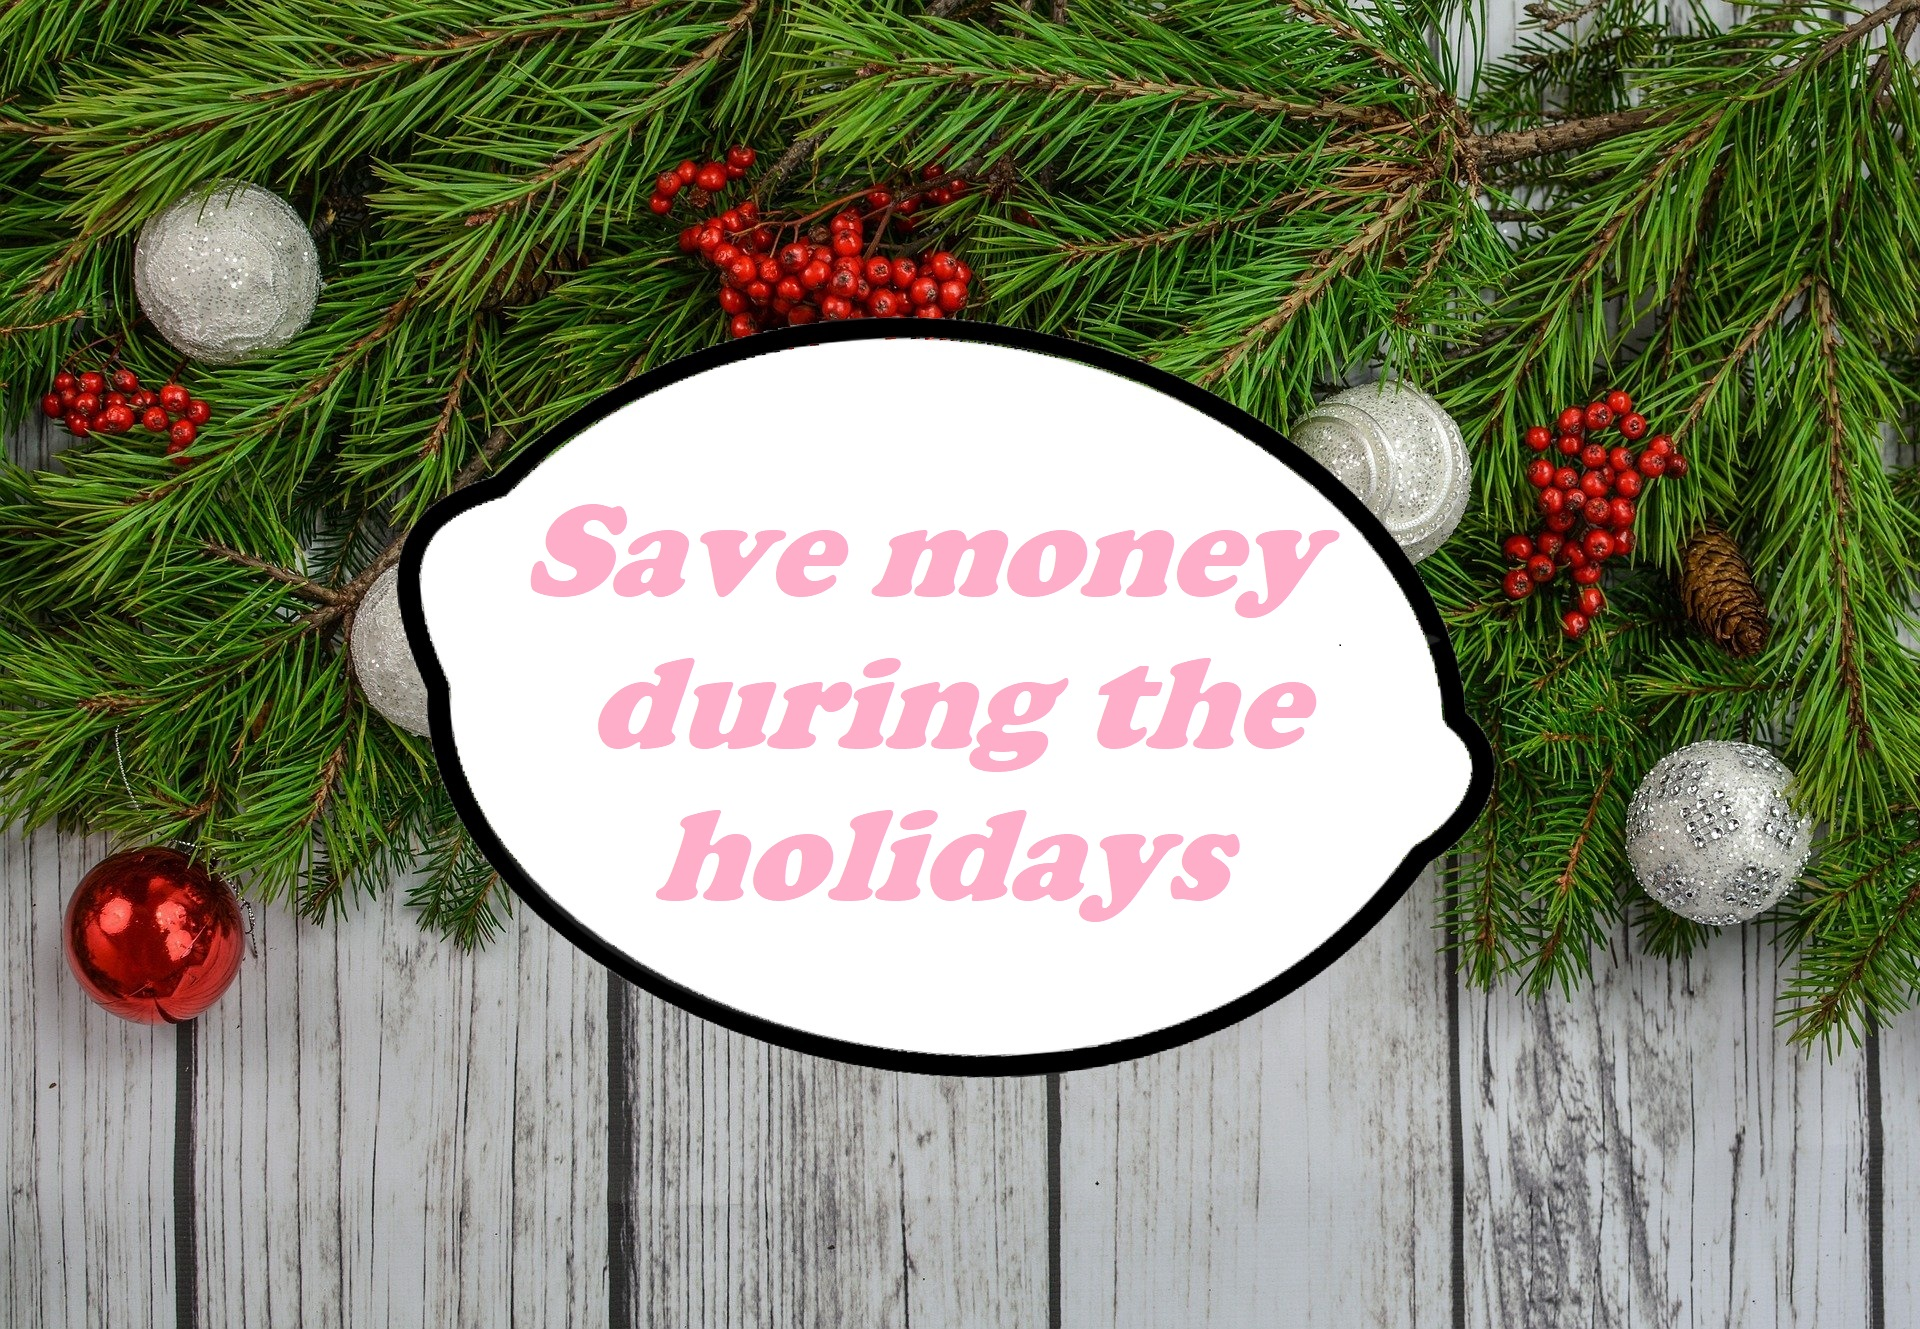 How to save money during the holidays